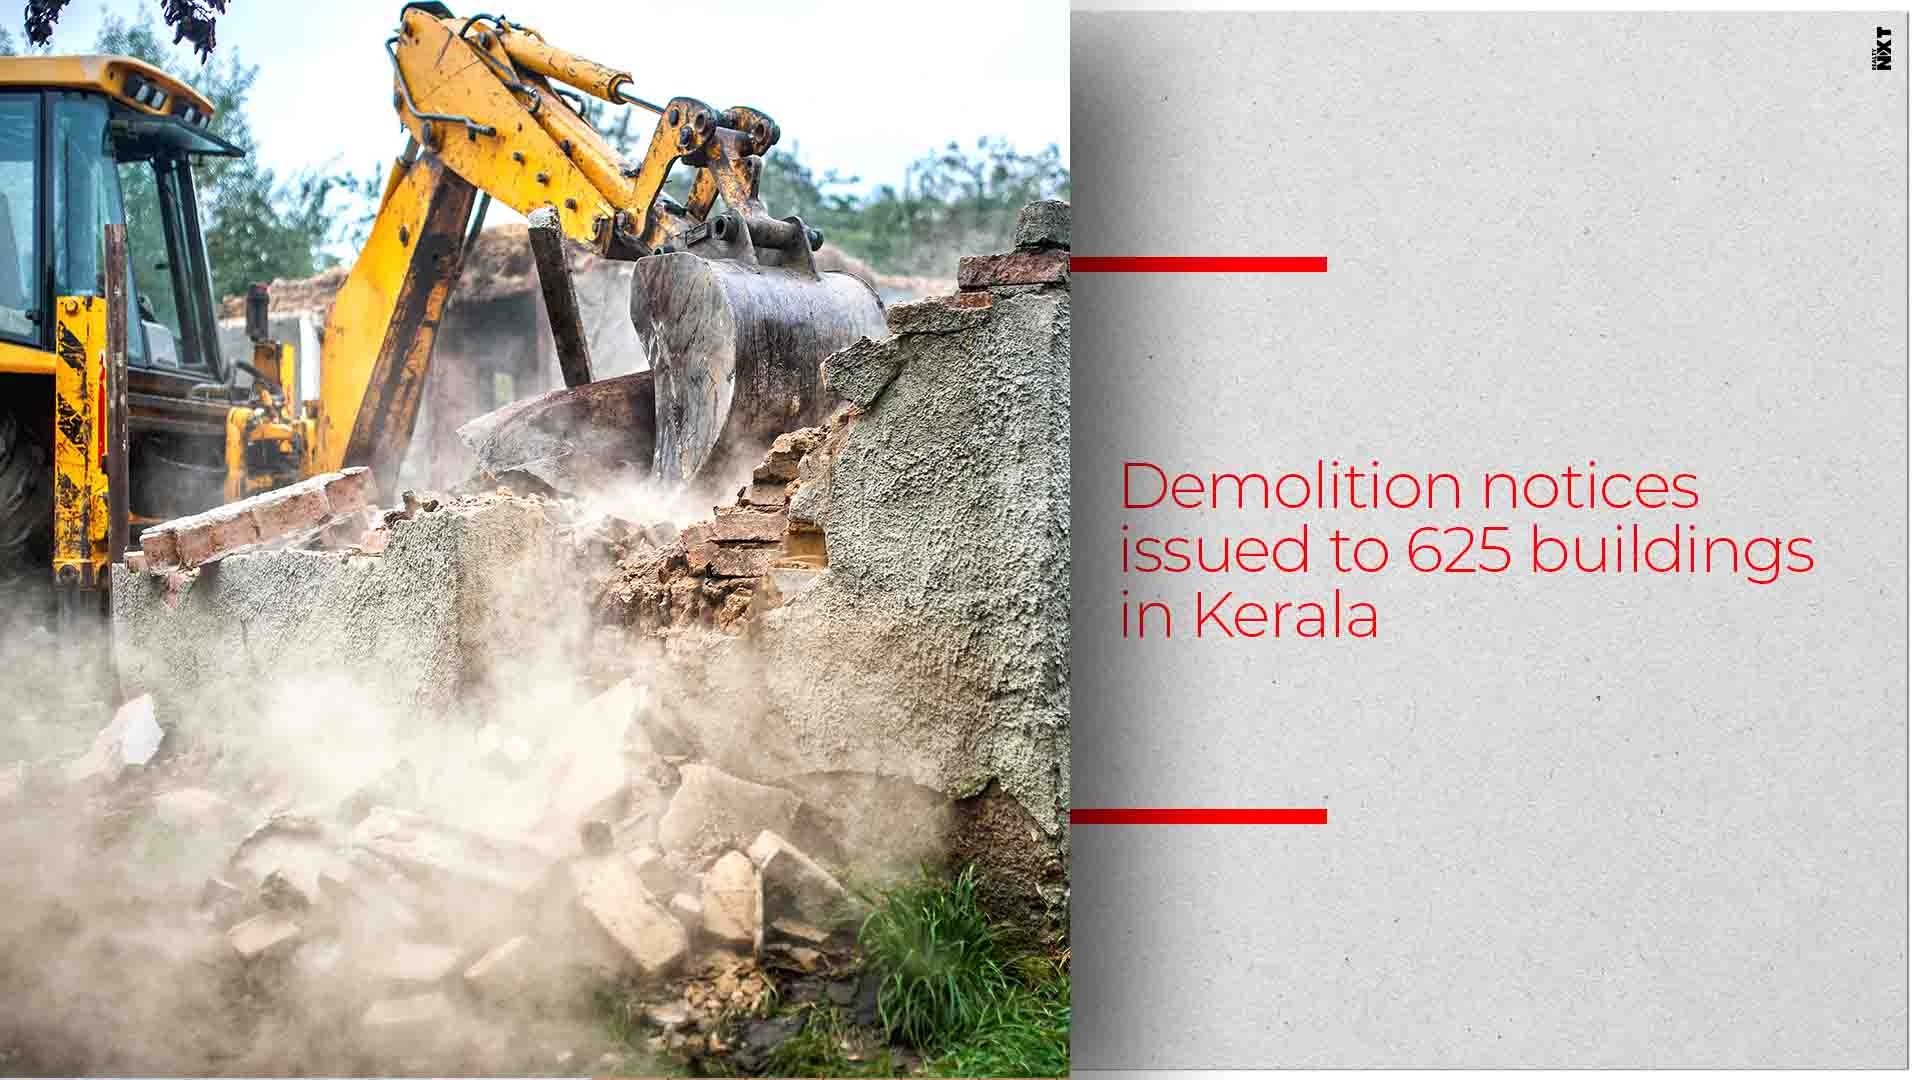 Over 600 backwater properties in Kerala to be demolished for CRZ violations, HC told